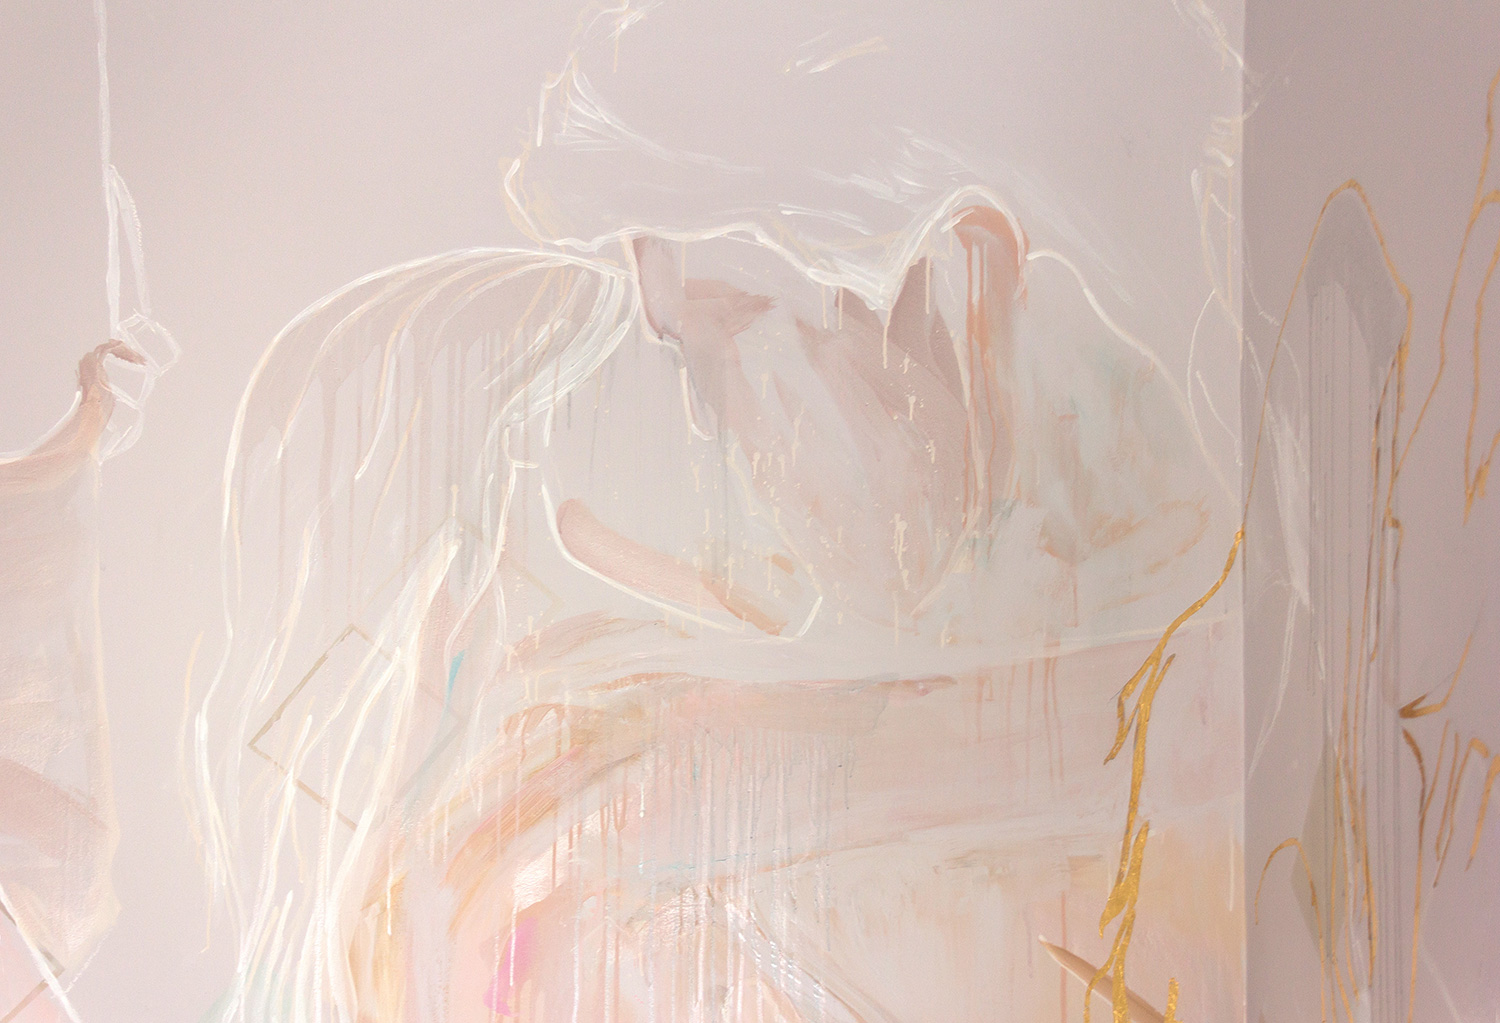 Mural close up of couple passionately kissing. Painted in a loose, abstract style with soft pastel colours, the figures are outlined in white and gold leaf.